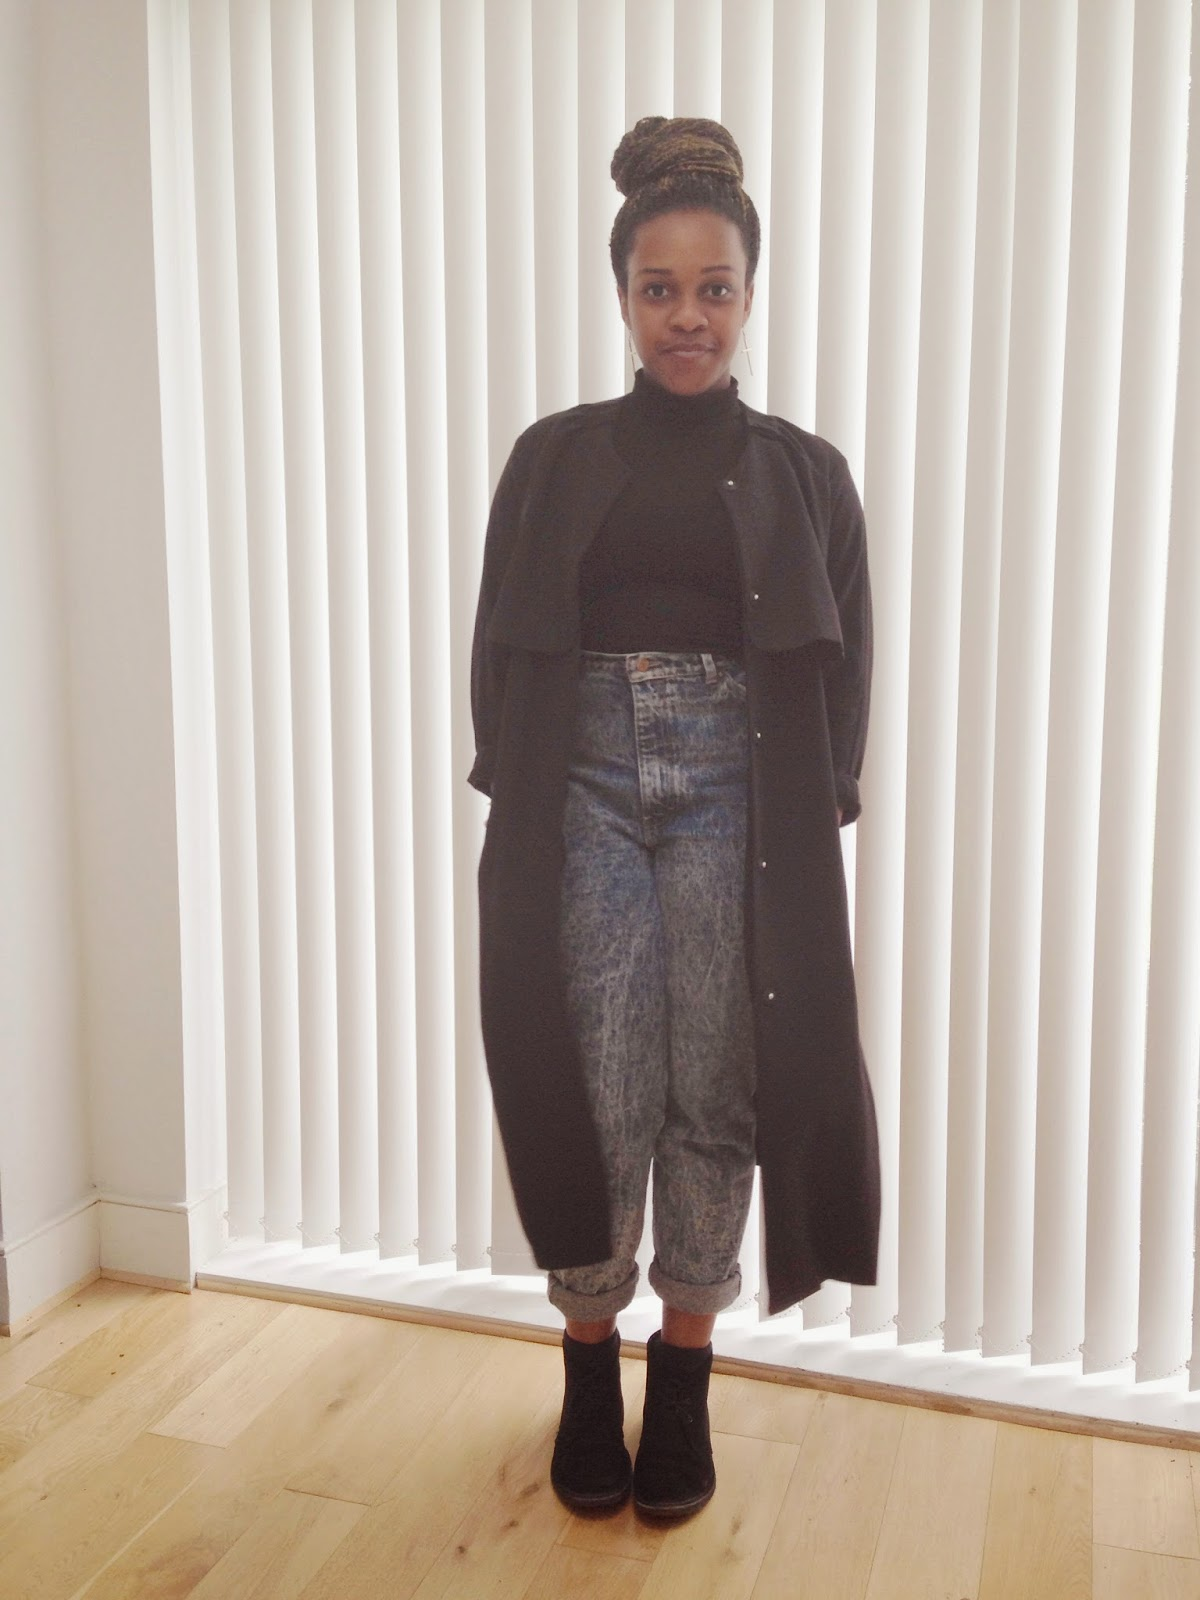 HM Black Duster Coat ASOS Black Crop Polo Neck High Waisted Jeans Clarks Desert Boots